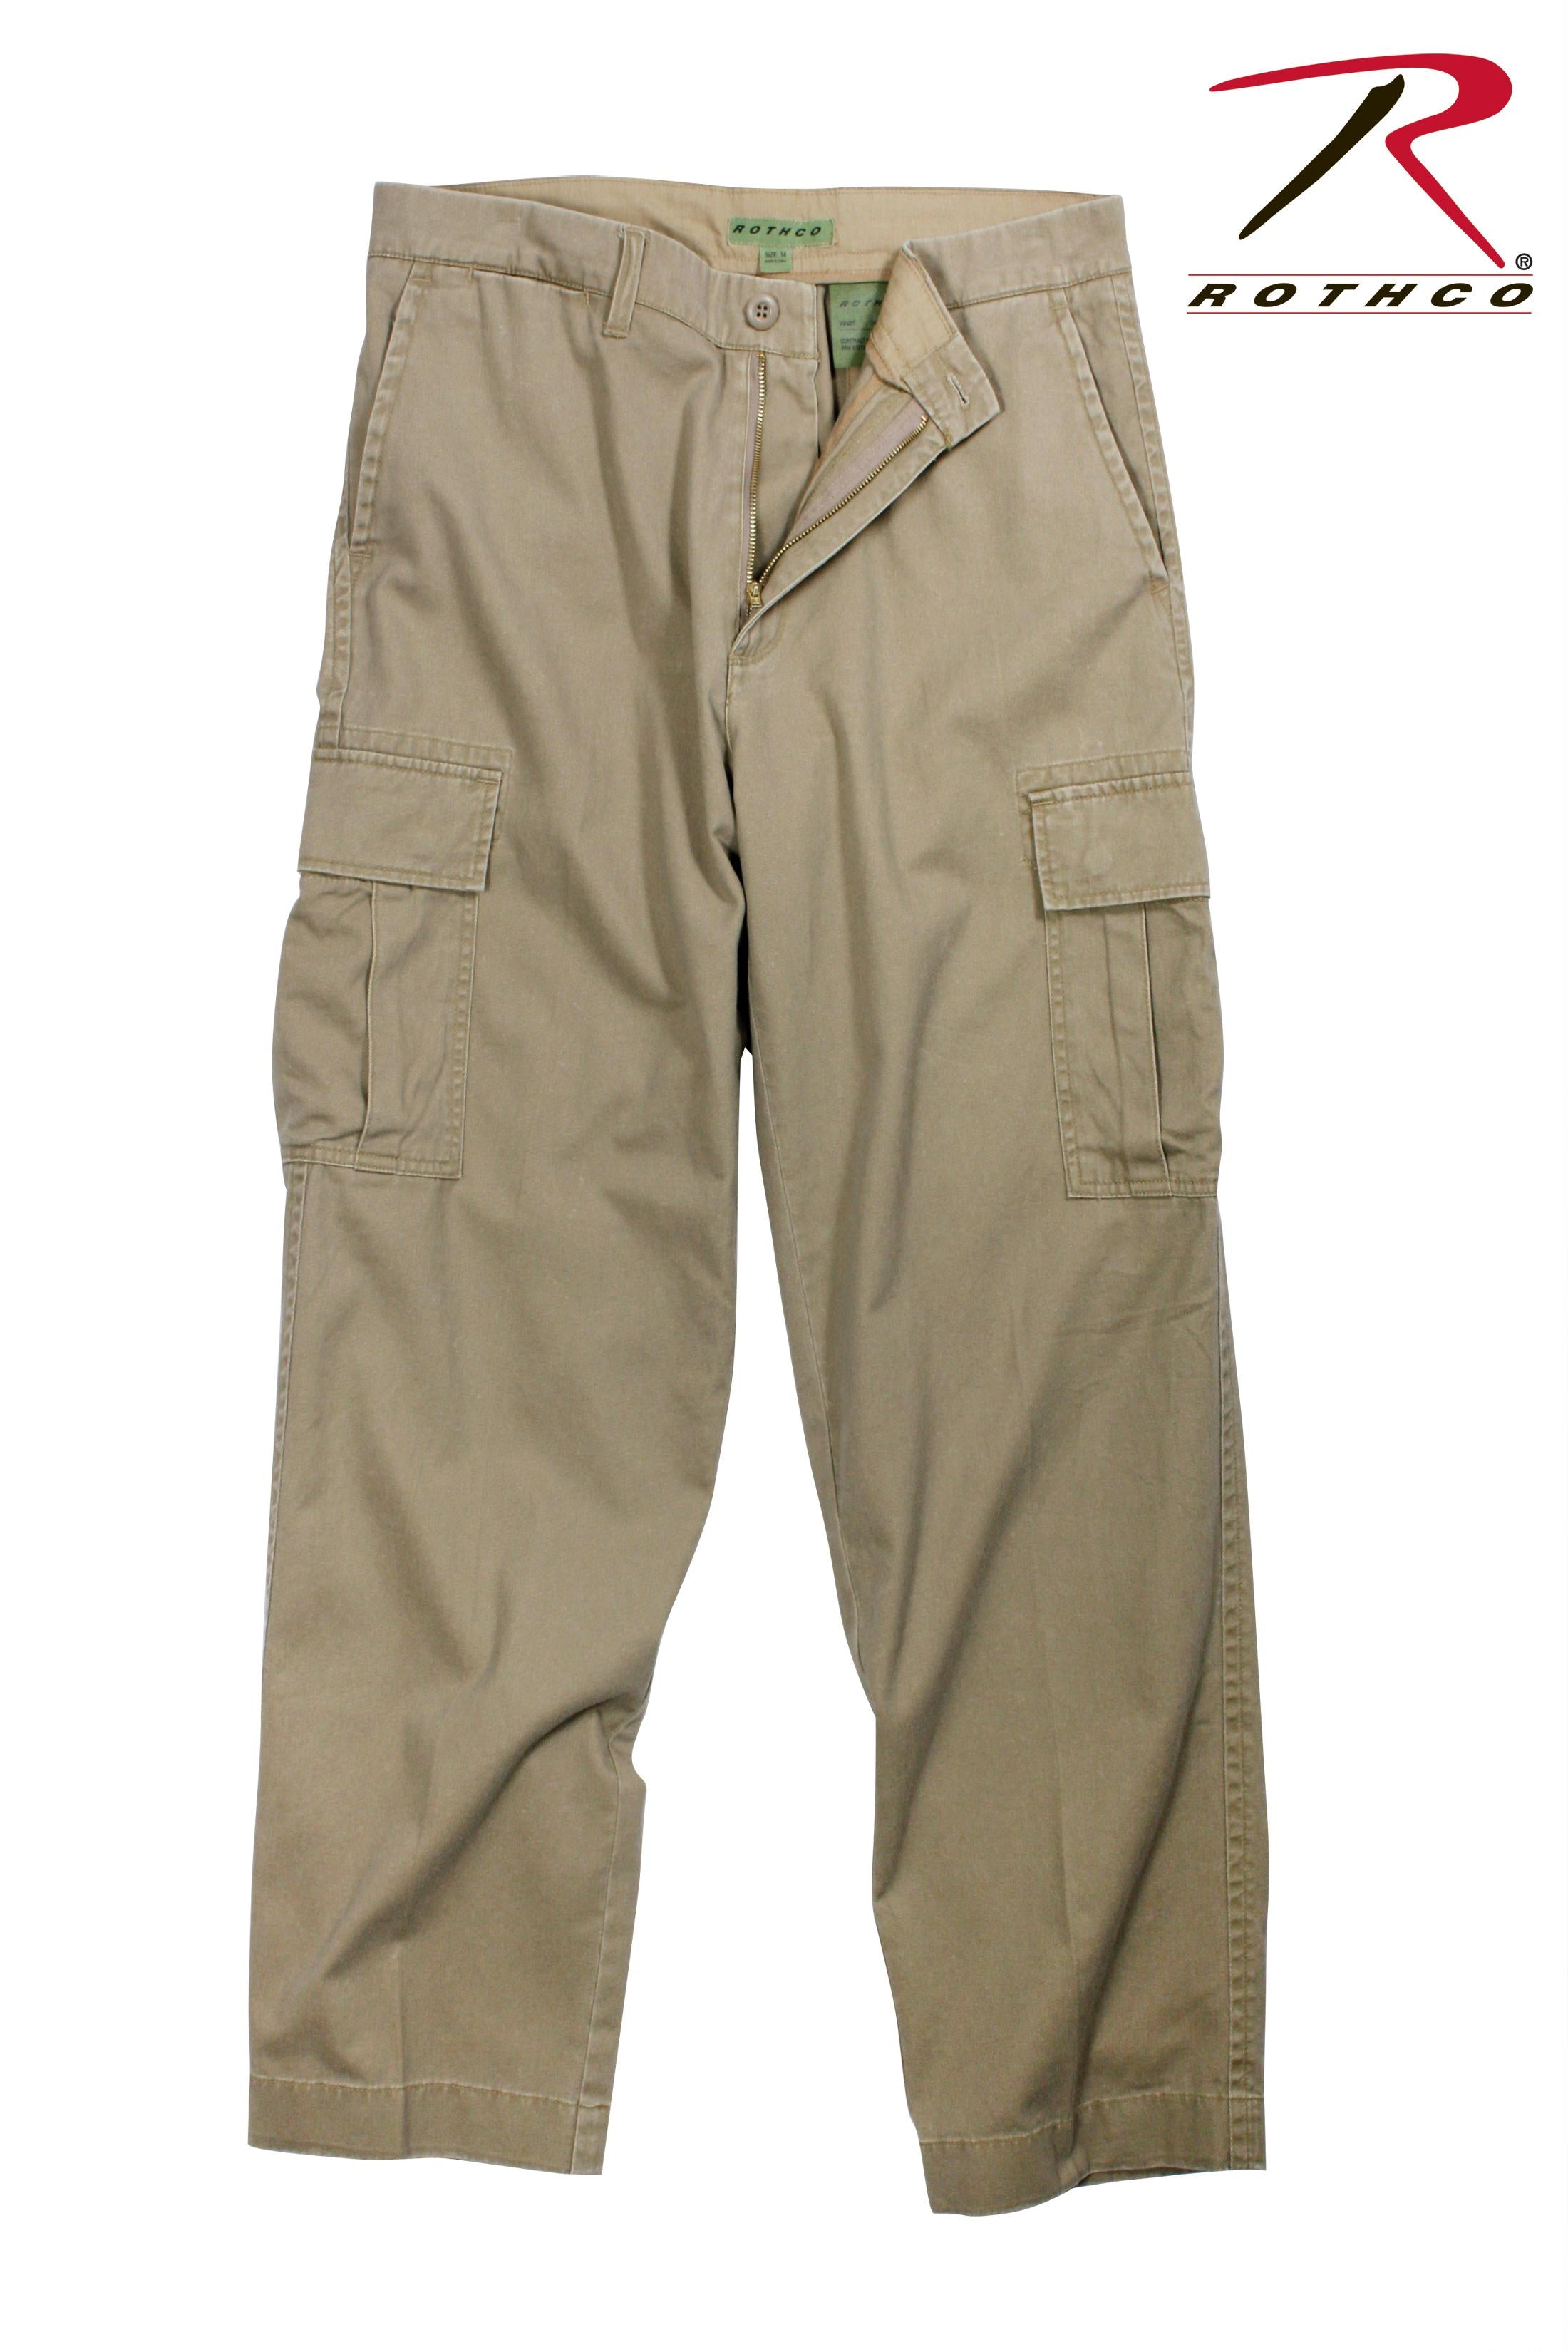 Rothco Vintage 6-Pocket Flat Front Fatigue Pants - Khaki / 36